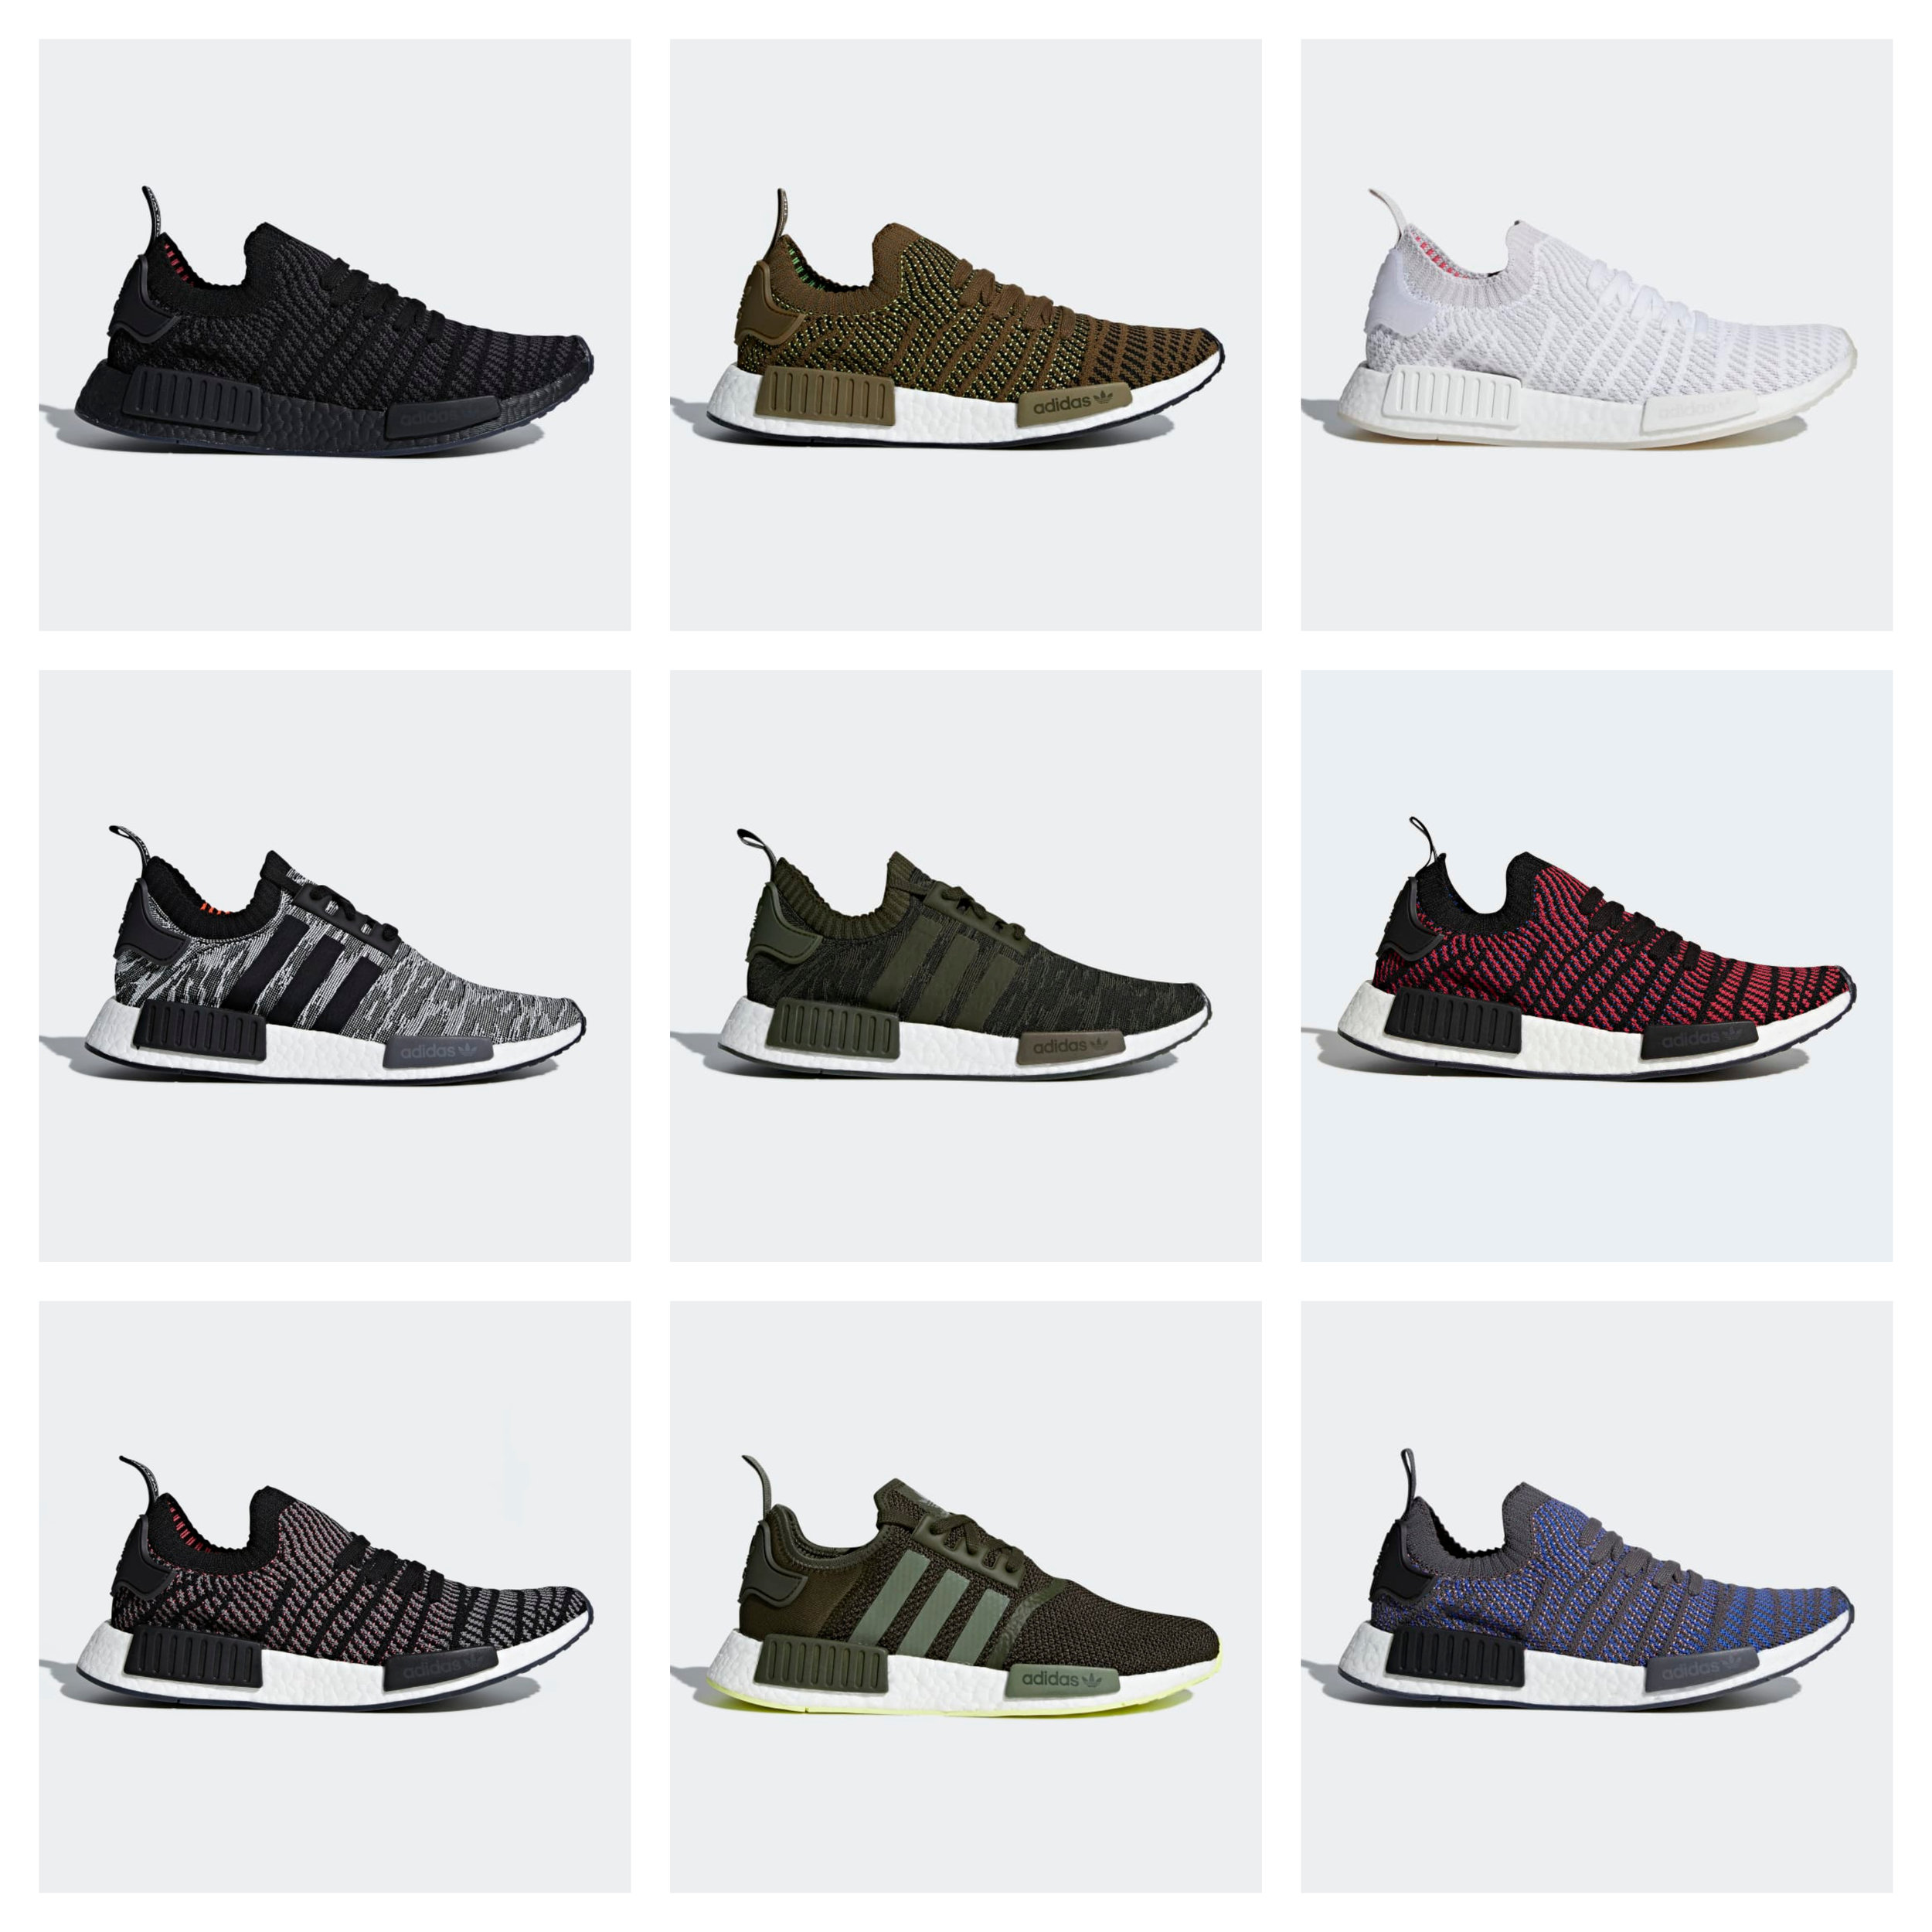 adidas nmd all colorways